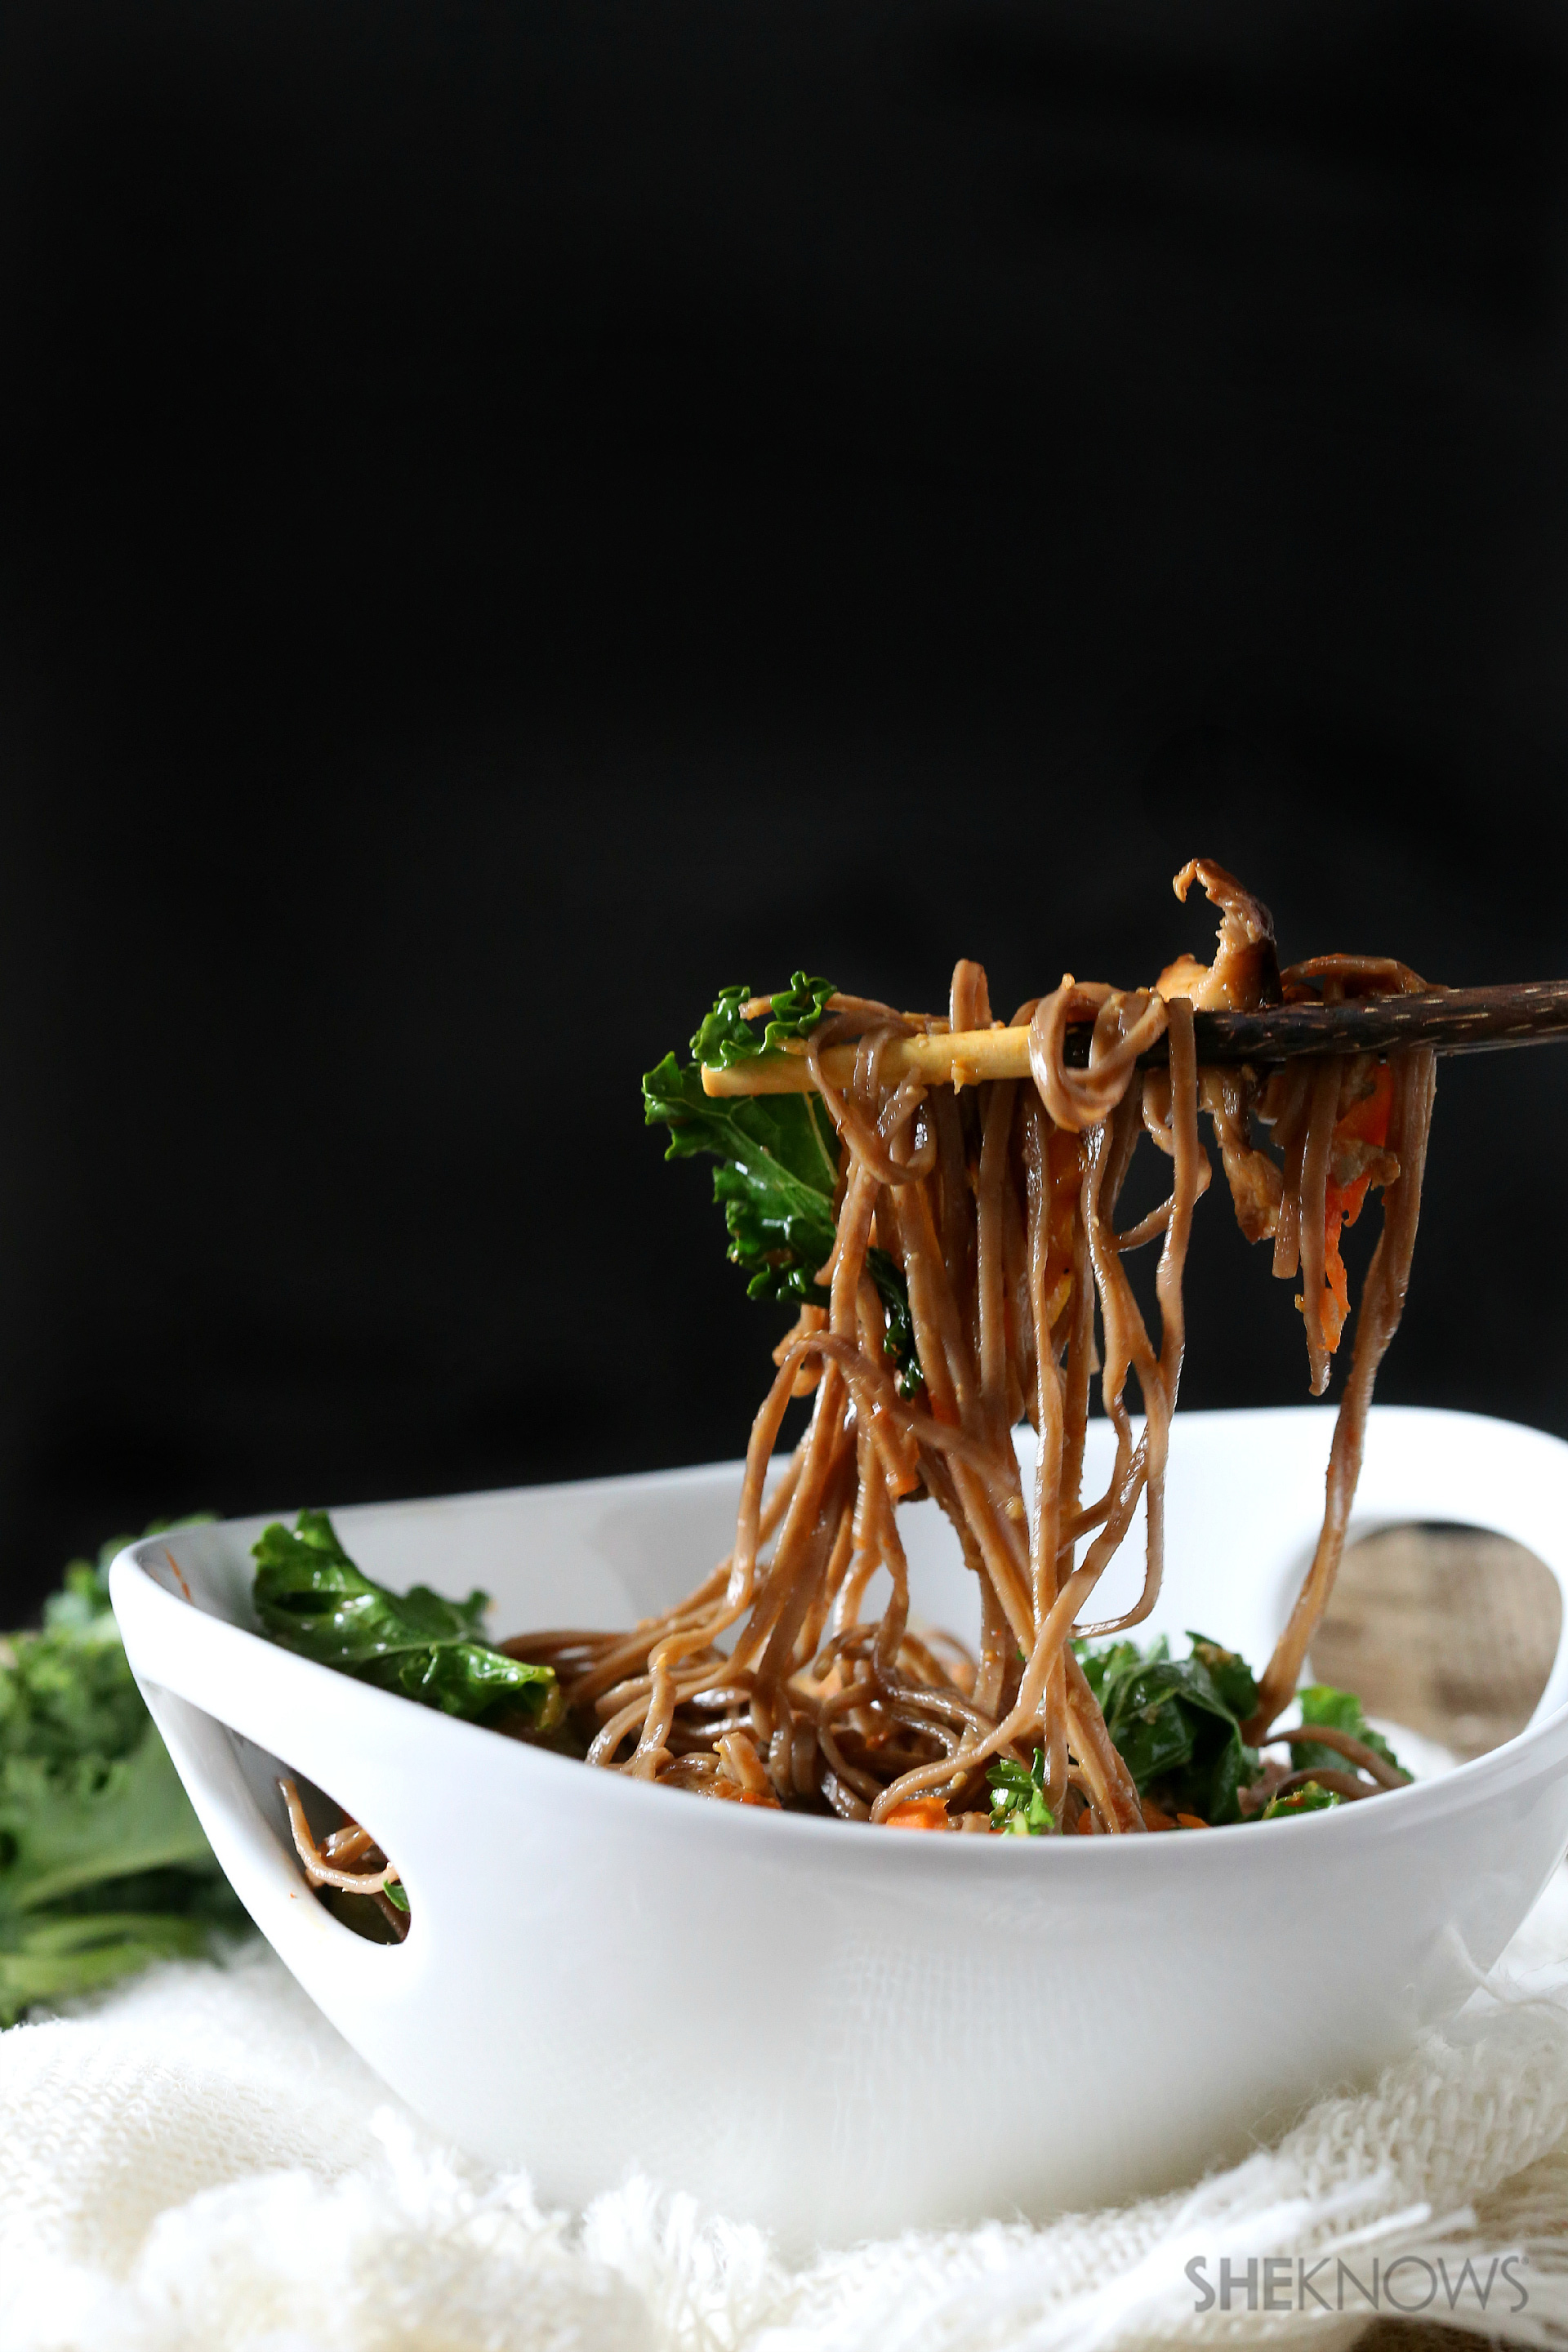 Spicy soba noodles with kale and shiitake mushrooms recipe